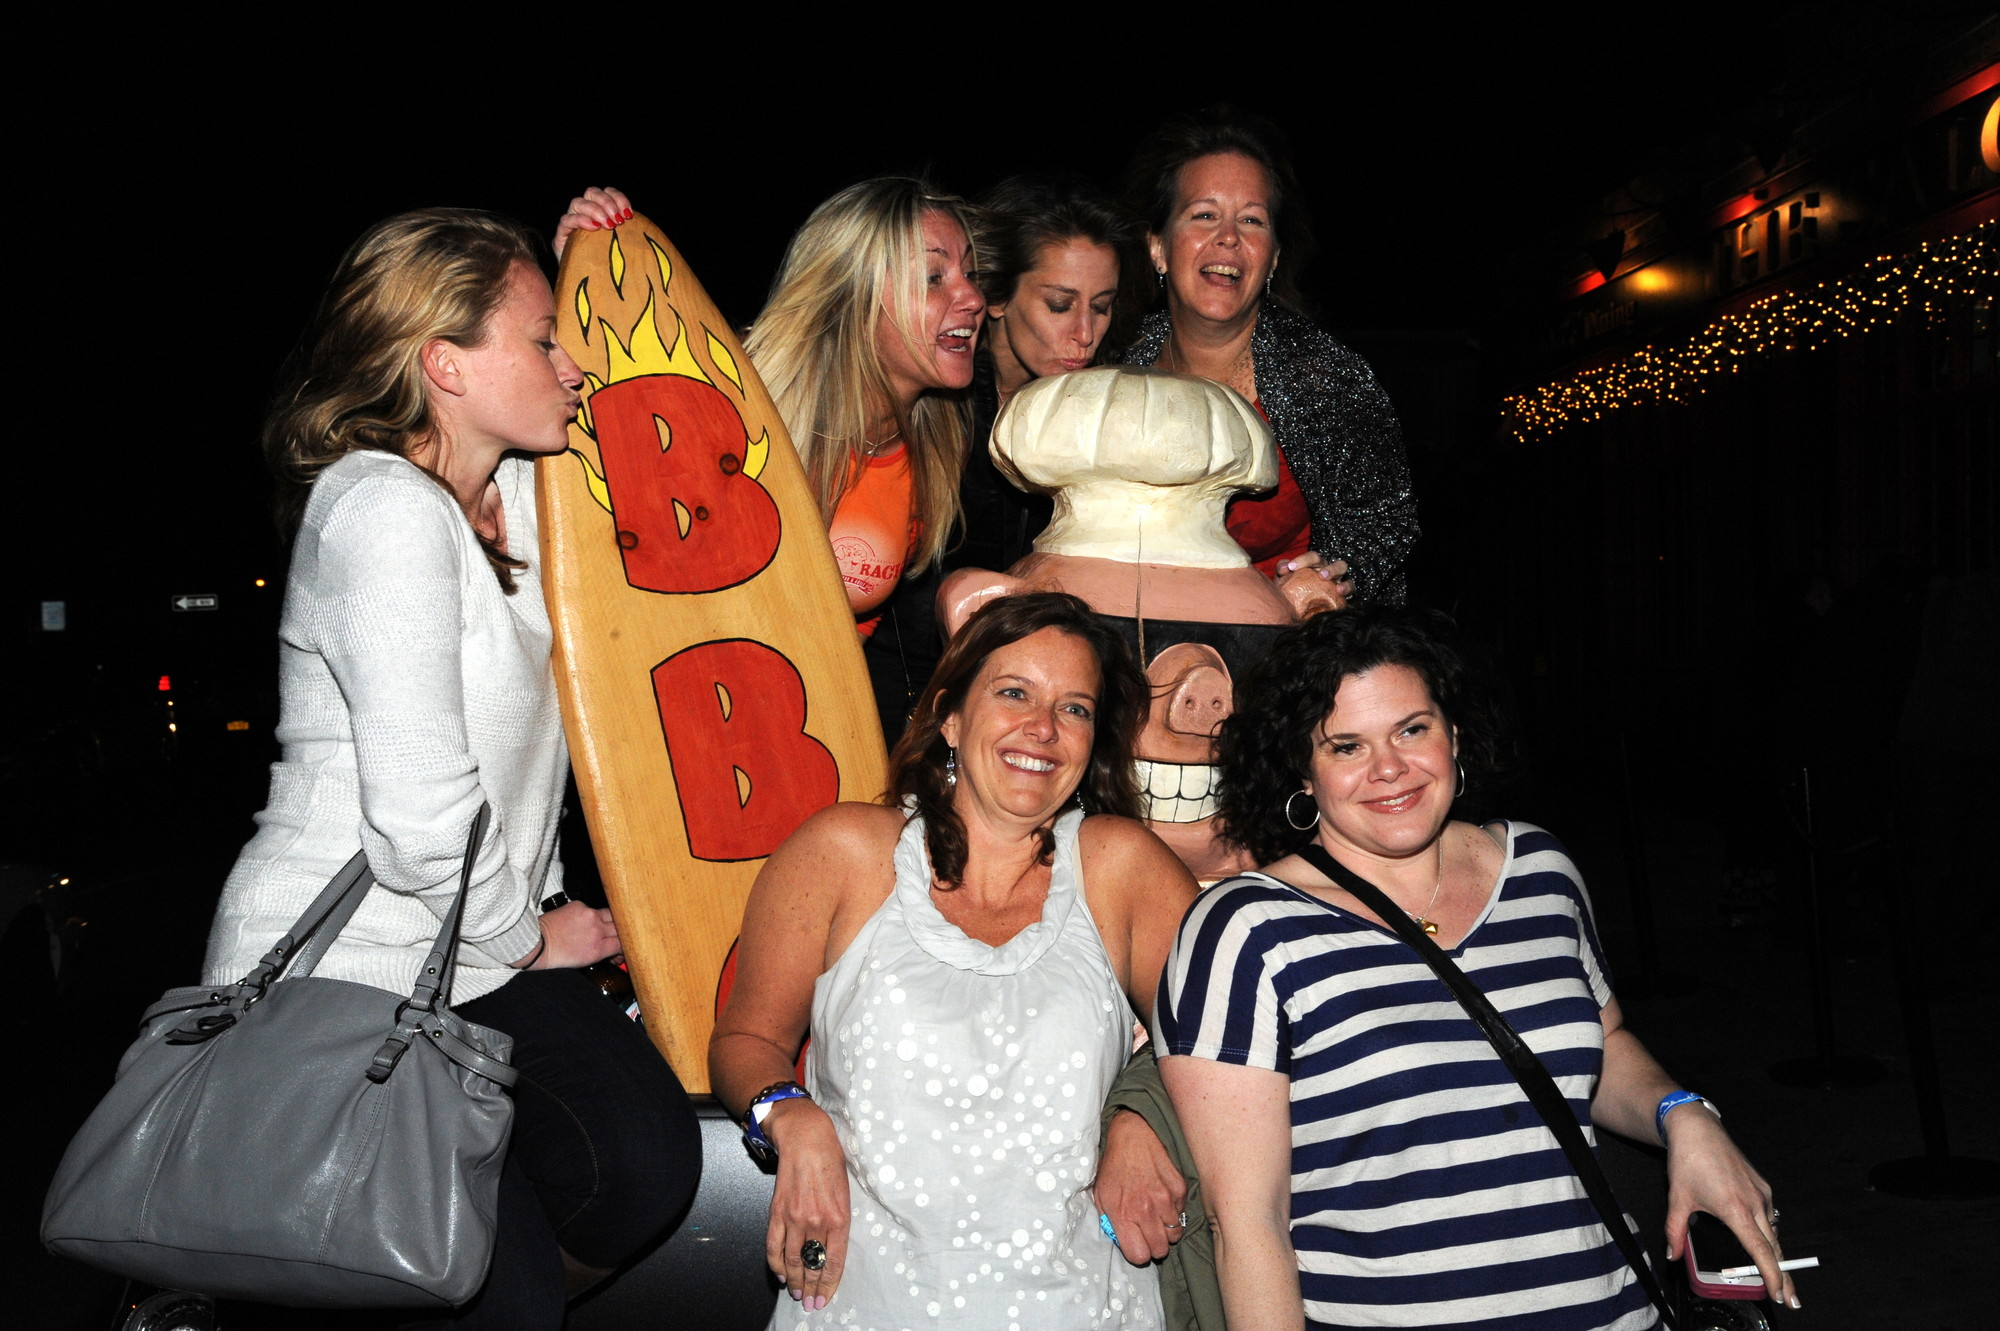 Katie Derer, Kelly Sullivan, Jennifer Burns, Marlene Hardy, Holly Handleman, and Kristina O'Neill at the April 20 fundraiser for Swingbellys.